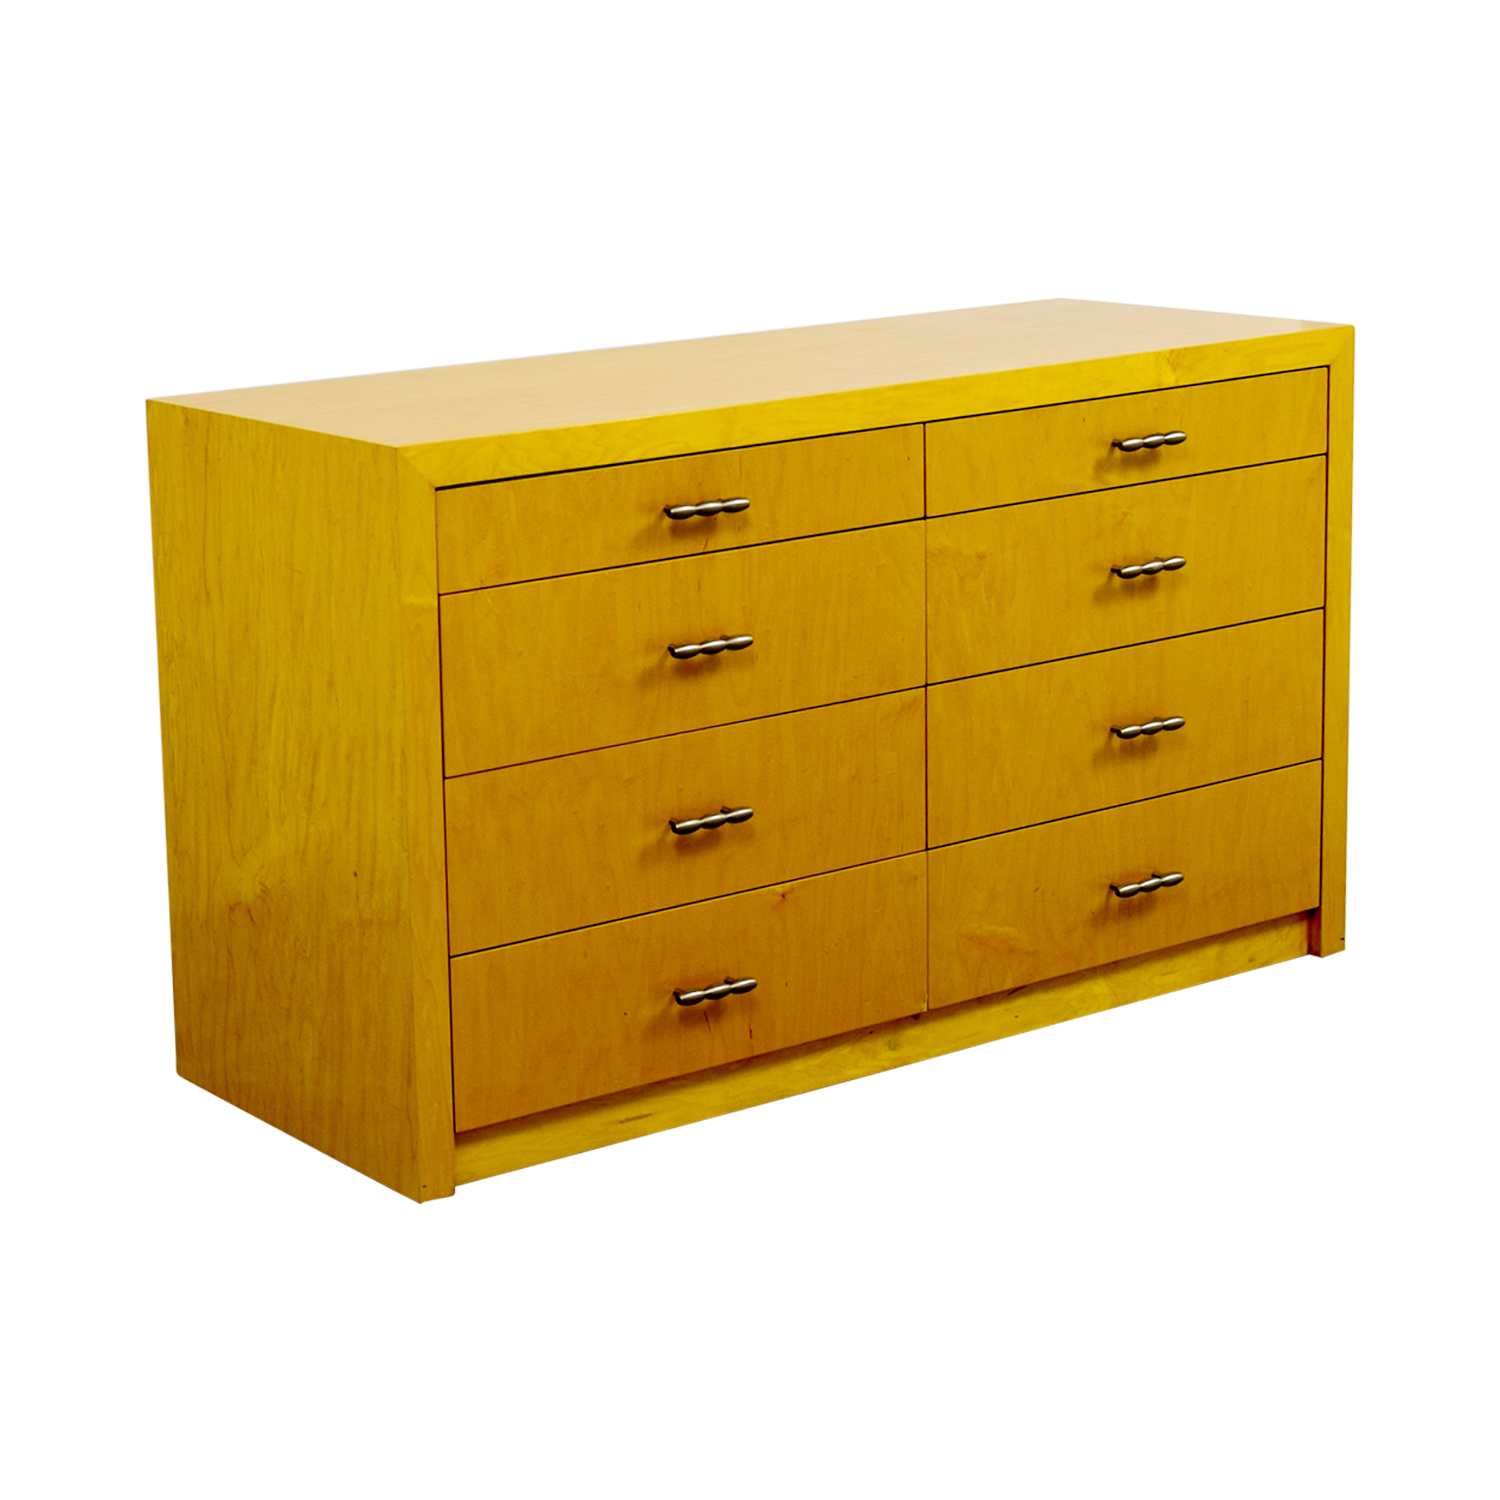 Manhattan Cabinetry Manhattan Cabinetry Maple Eight-Drawer Dresser price